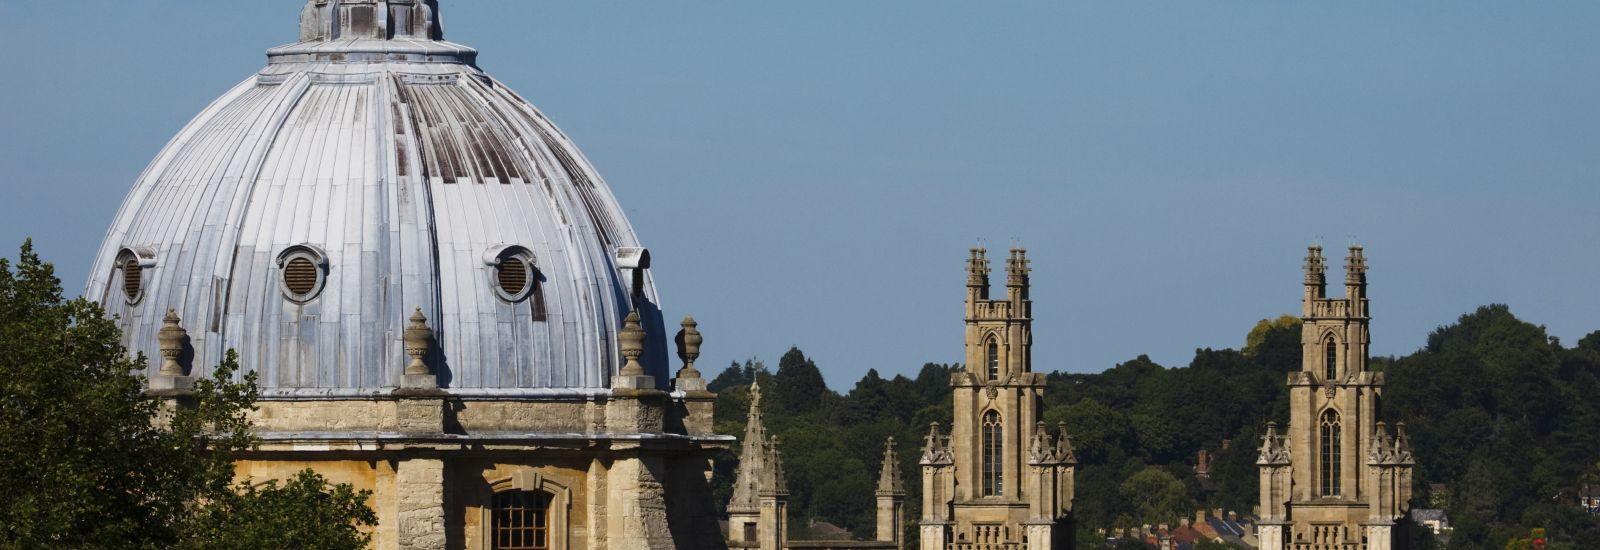 In Oxford - The Radcliffe Camera